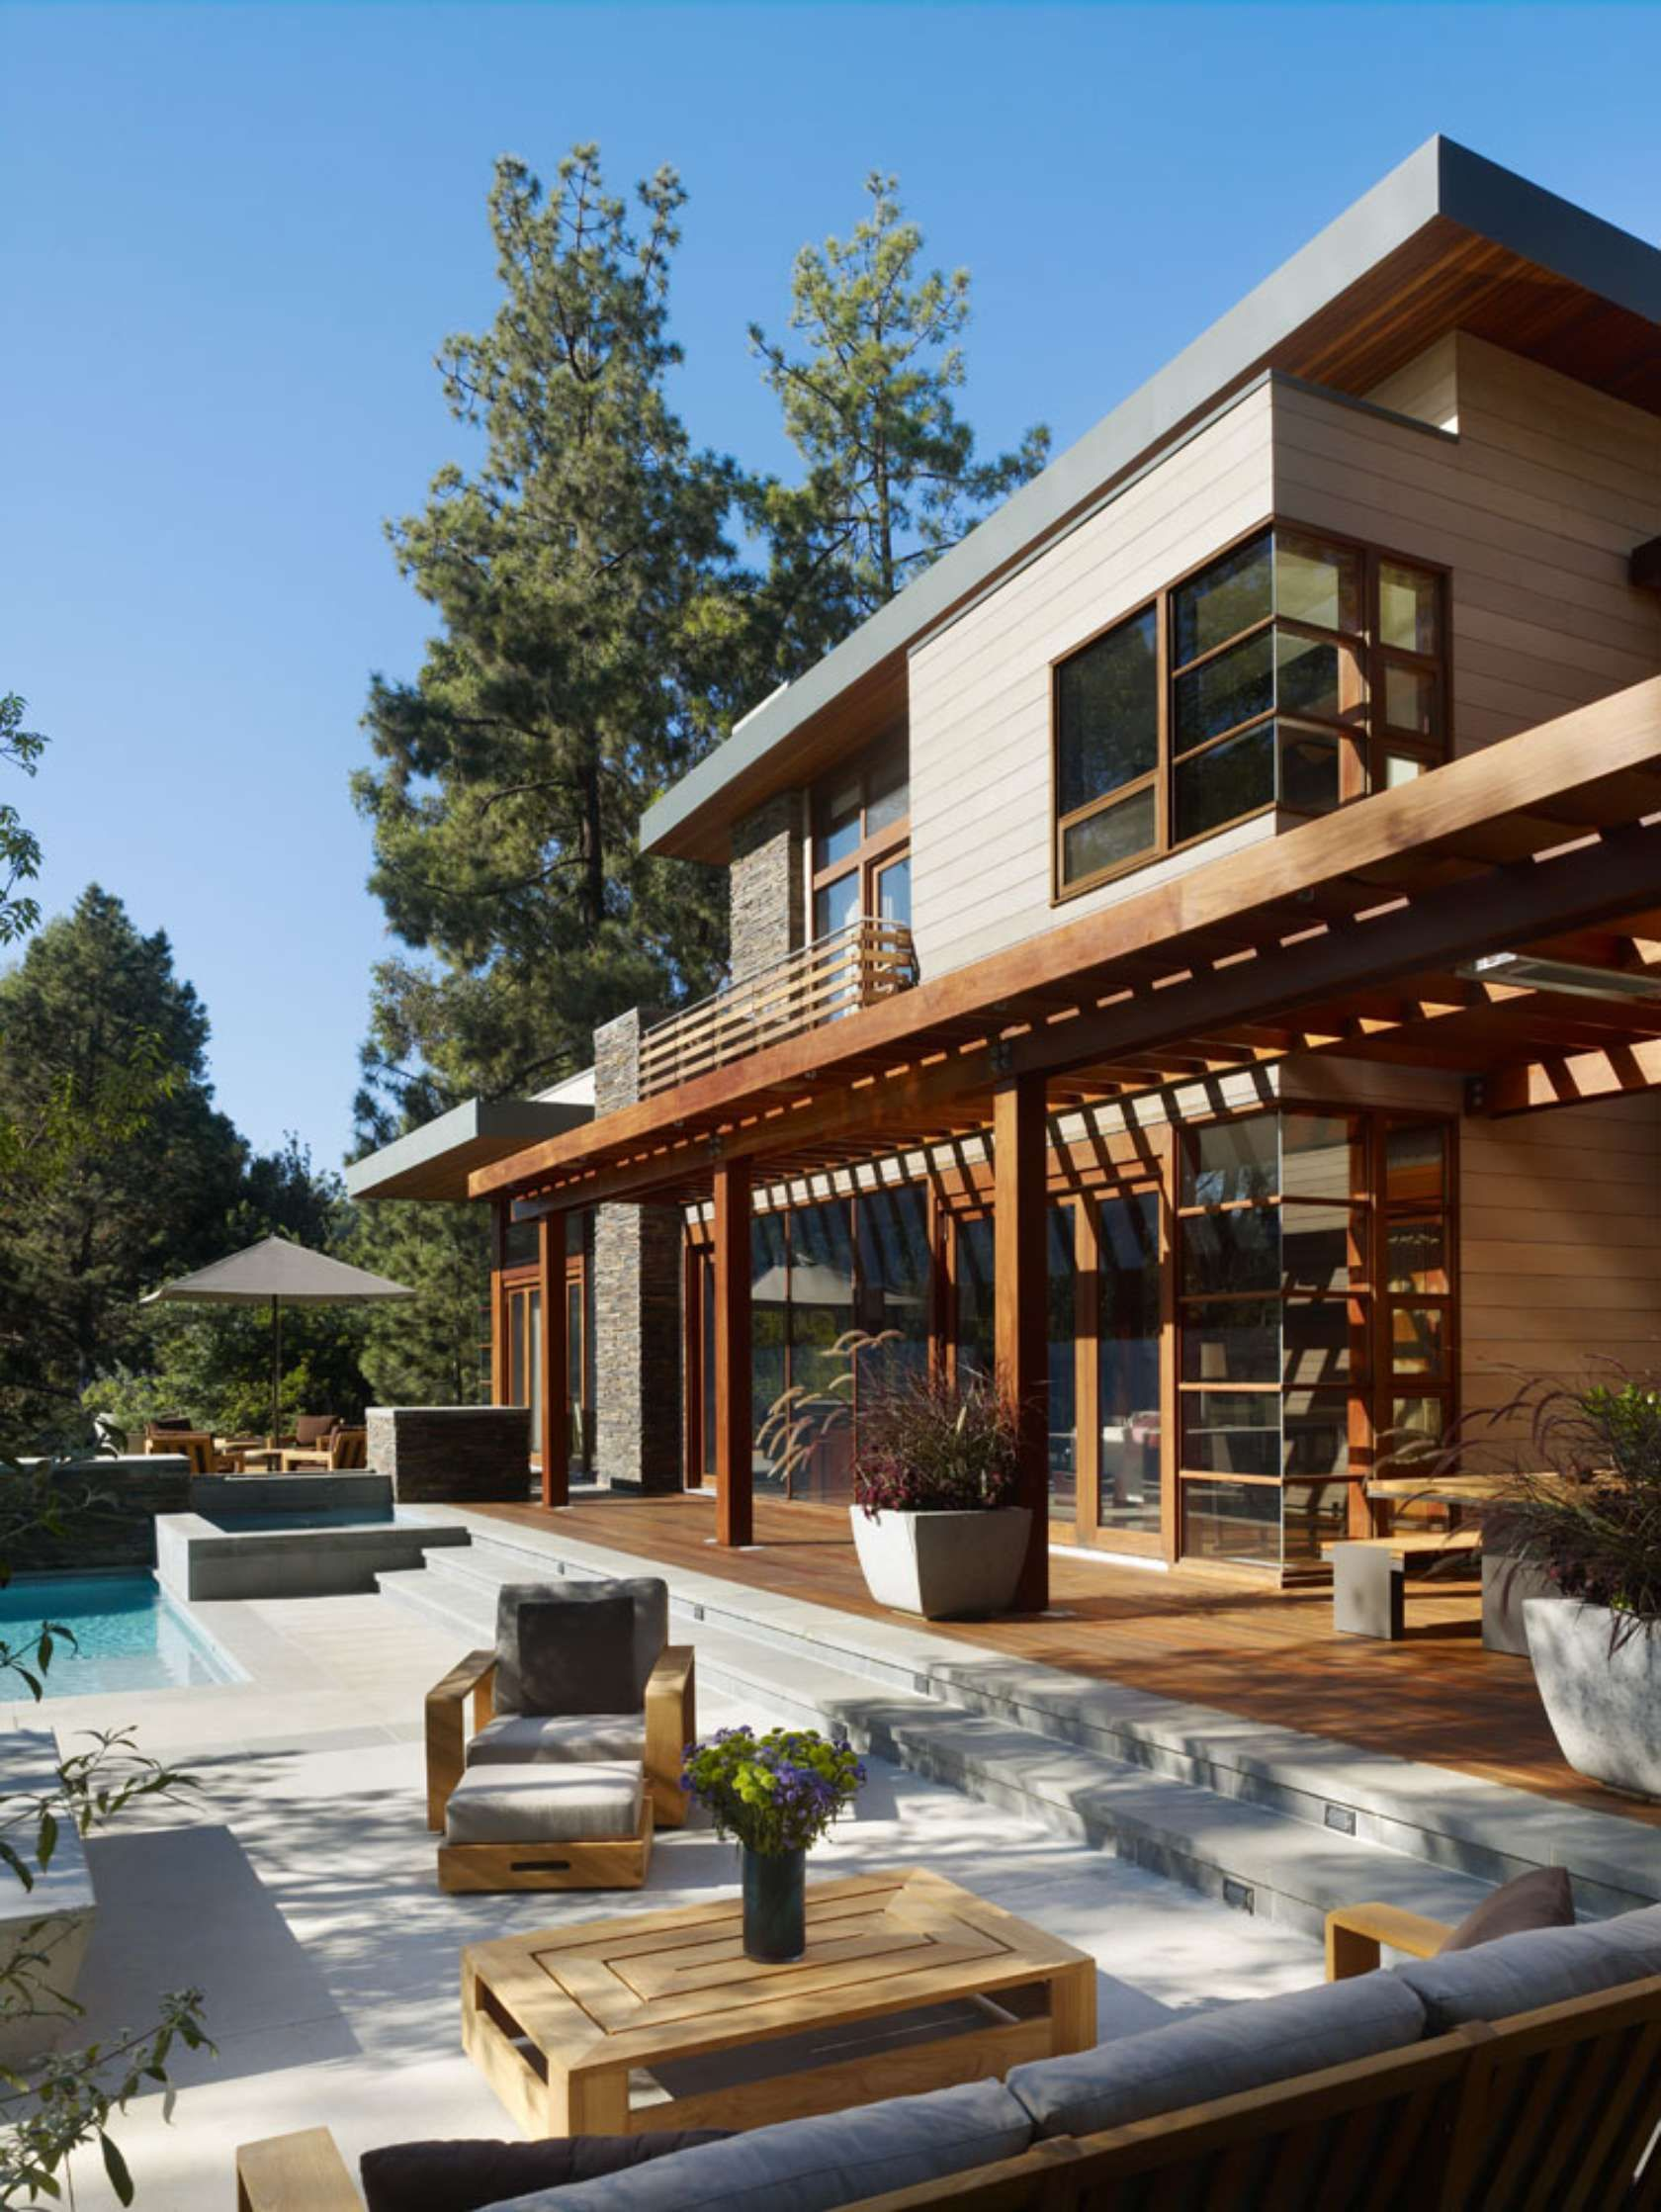 Mandeville Canyon Residence is an award winning dream